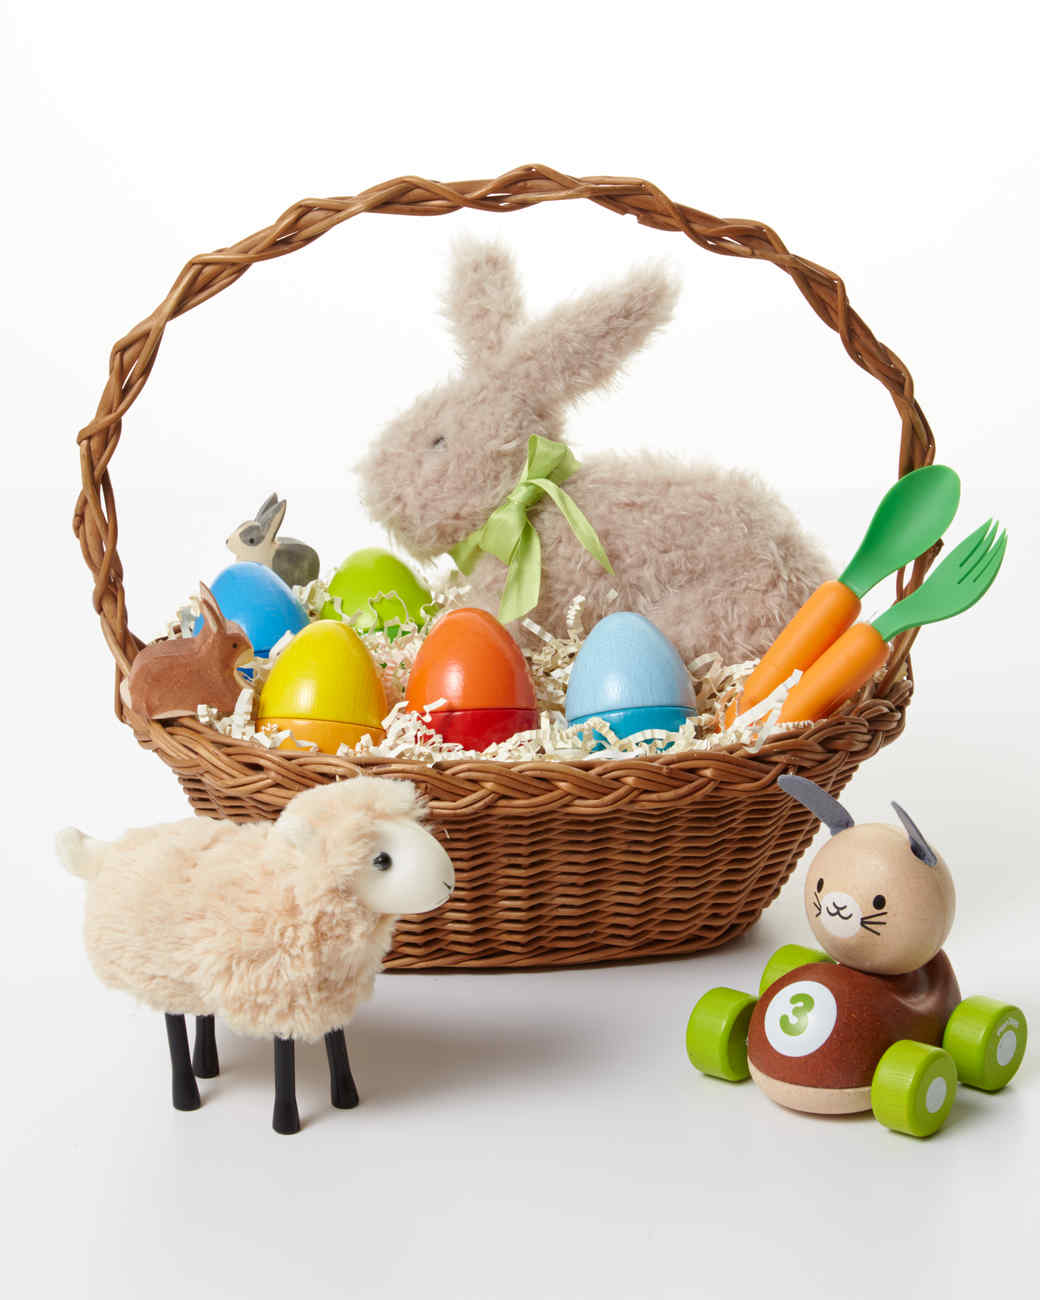 Why We Give Easter Baskets to Our Children